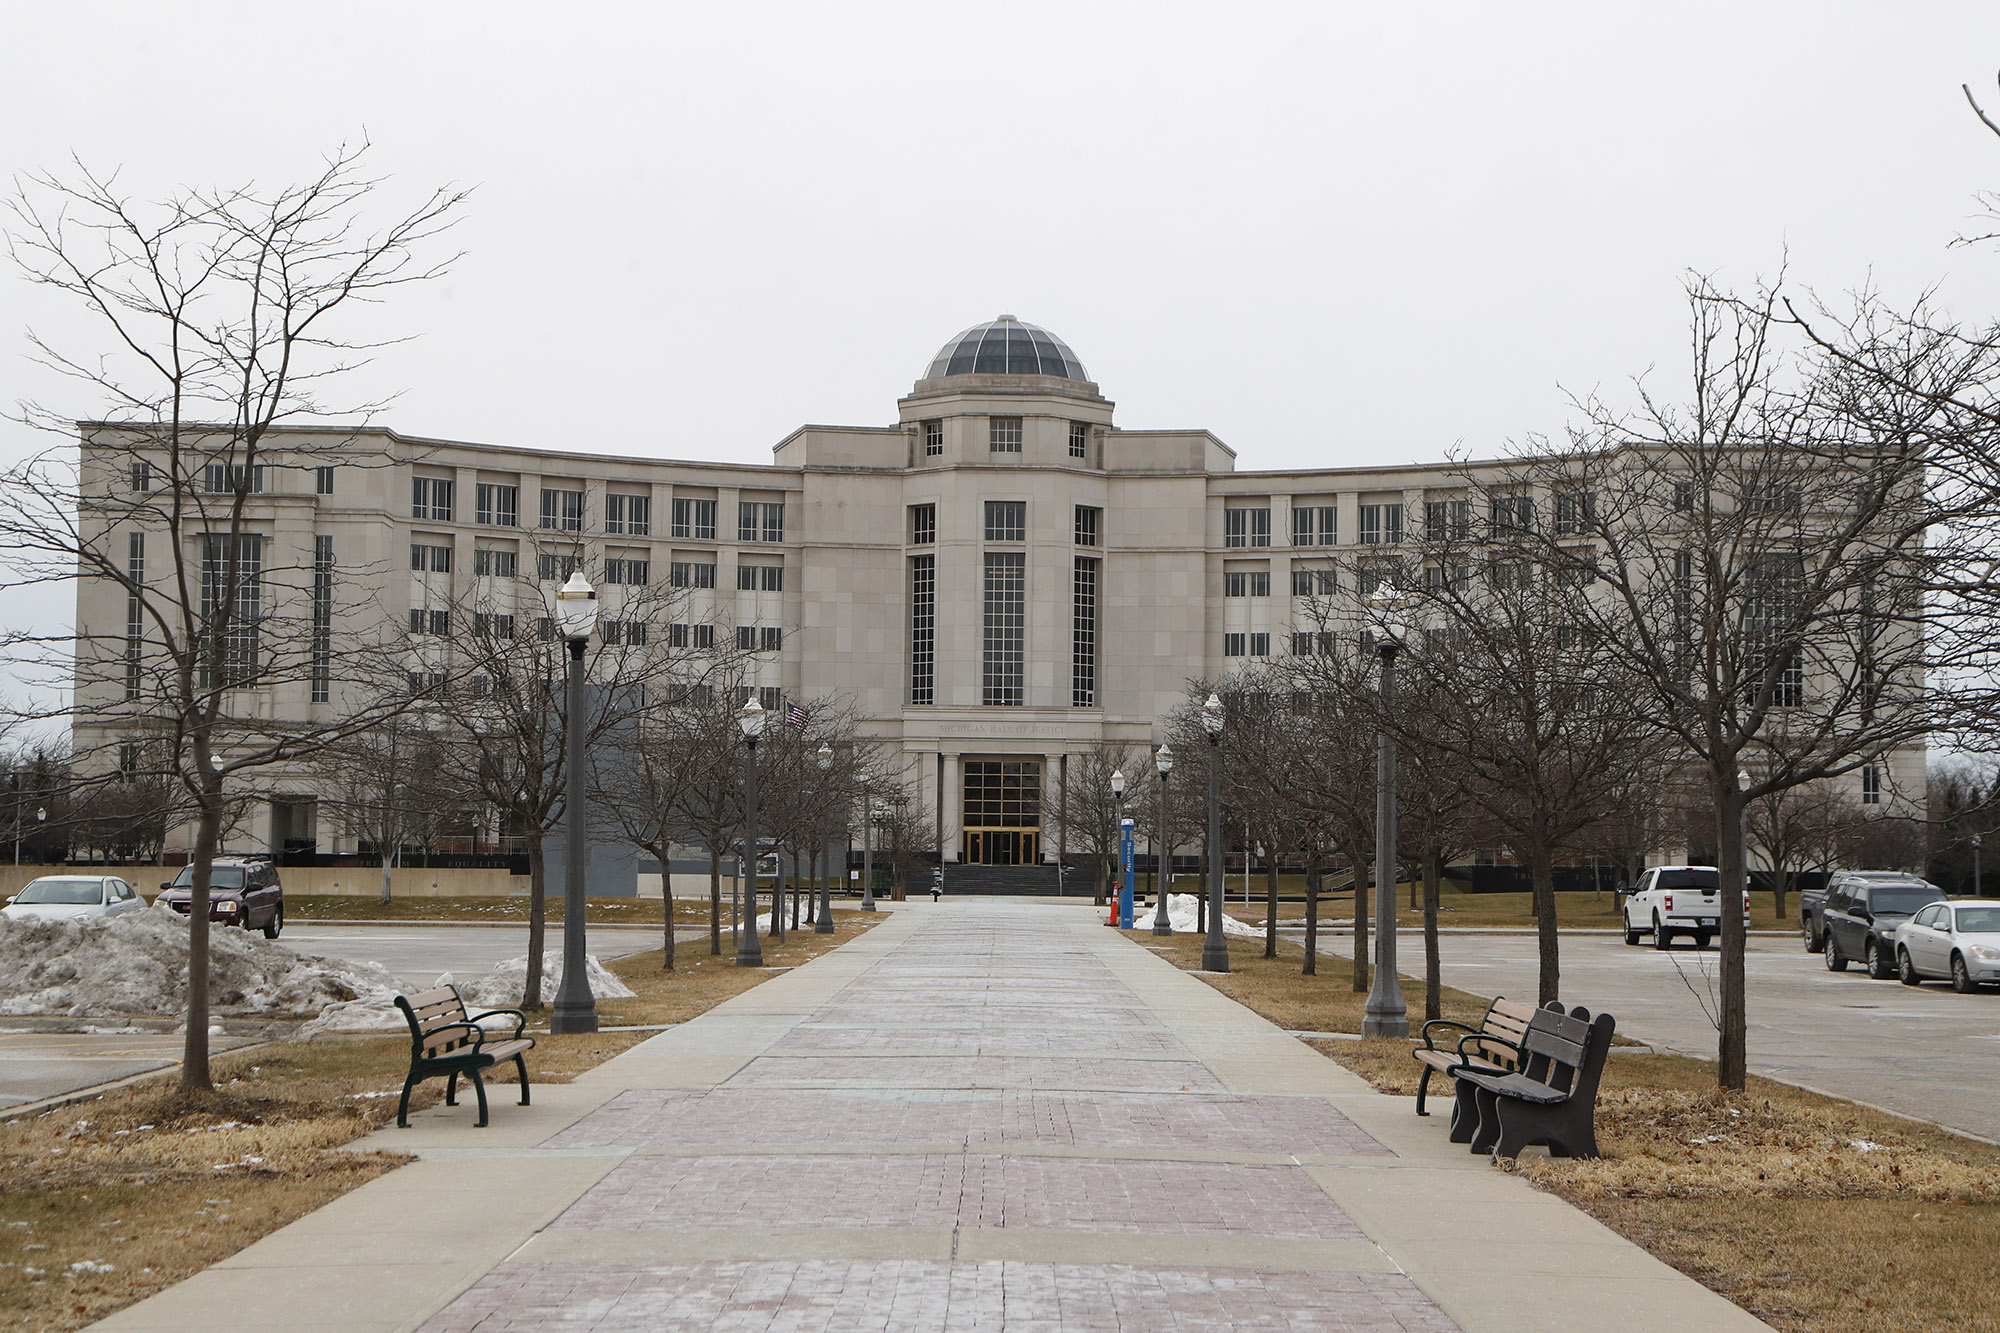 The Michigan Supreme Court's Hall of Justice in Lansing, Michigan on January 17.